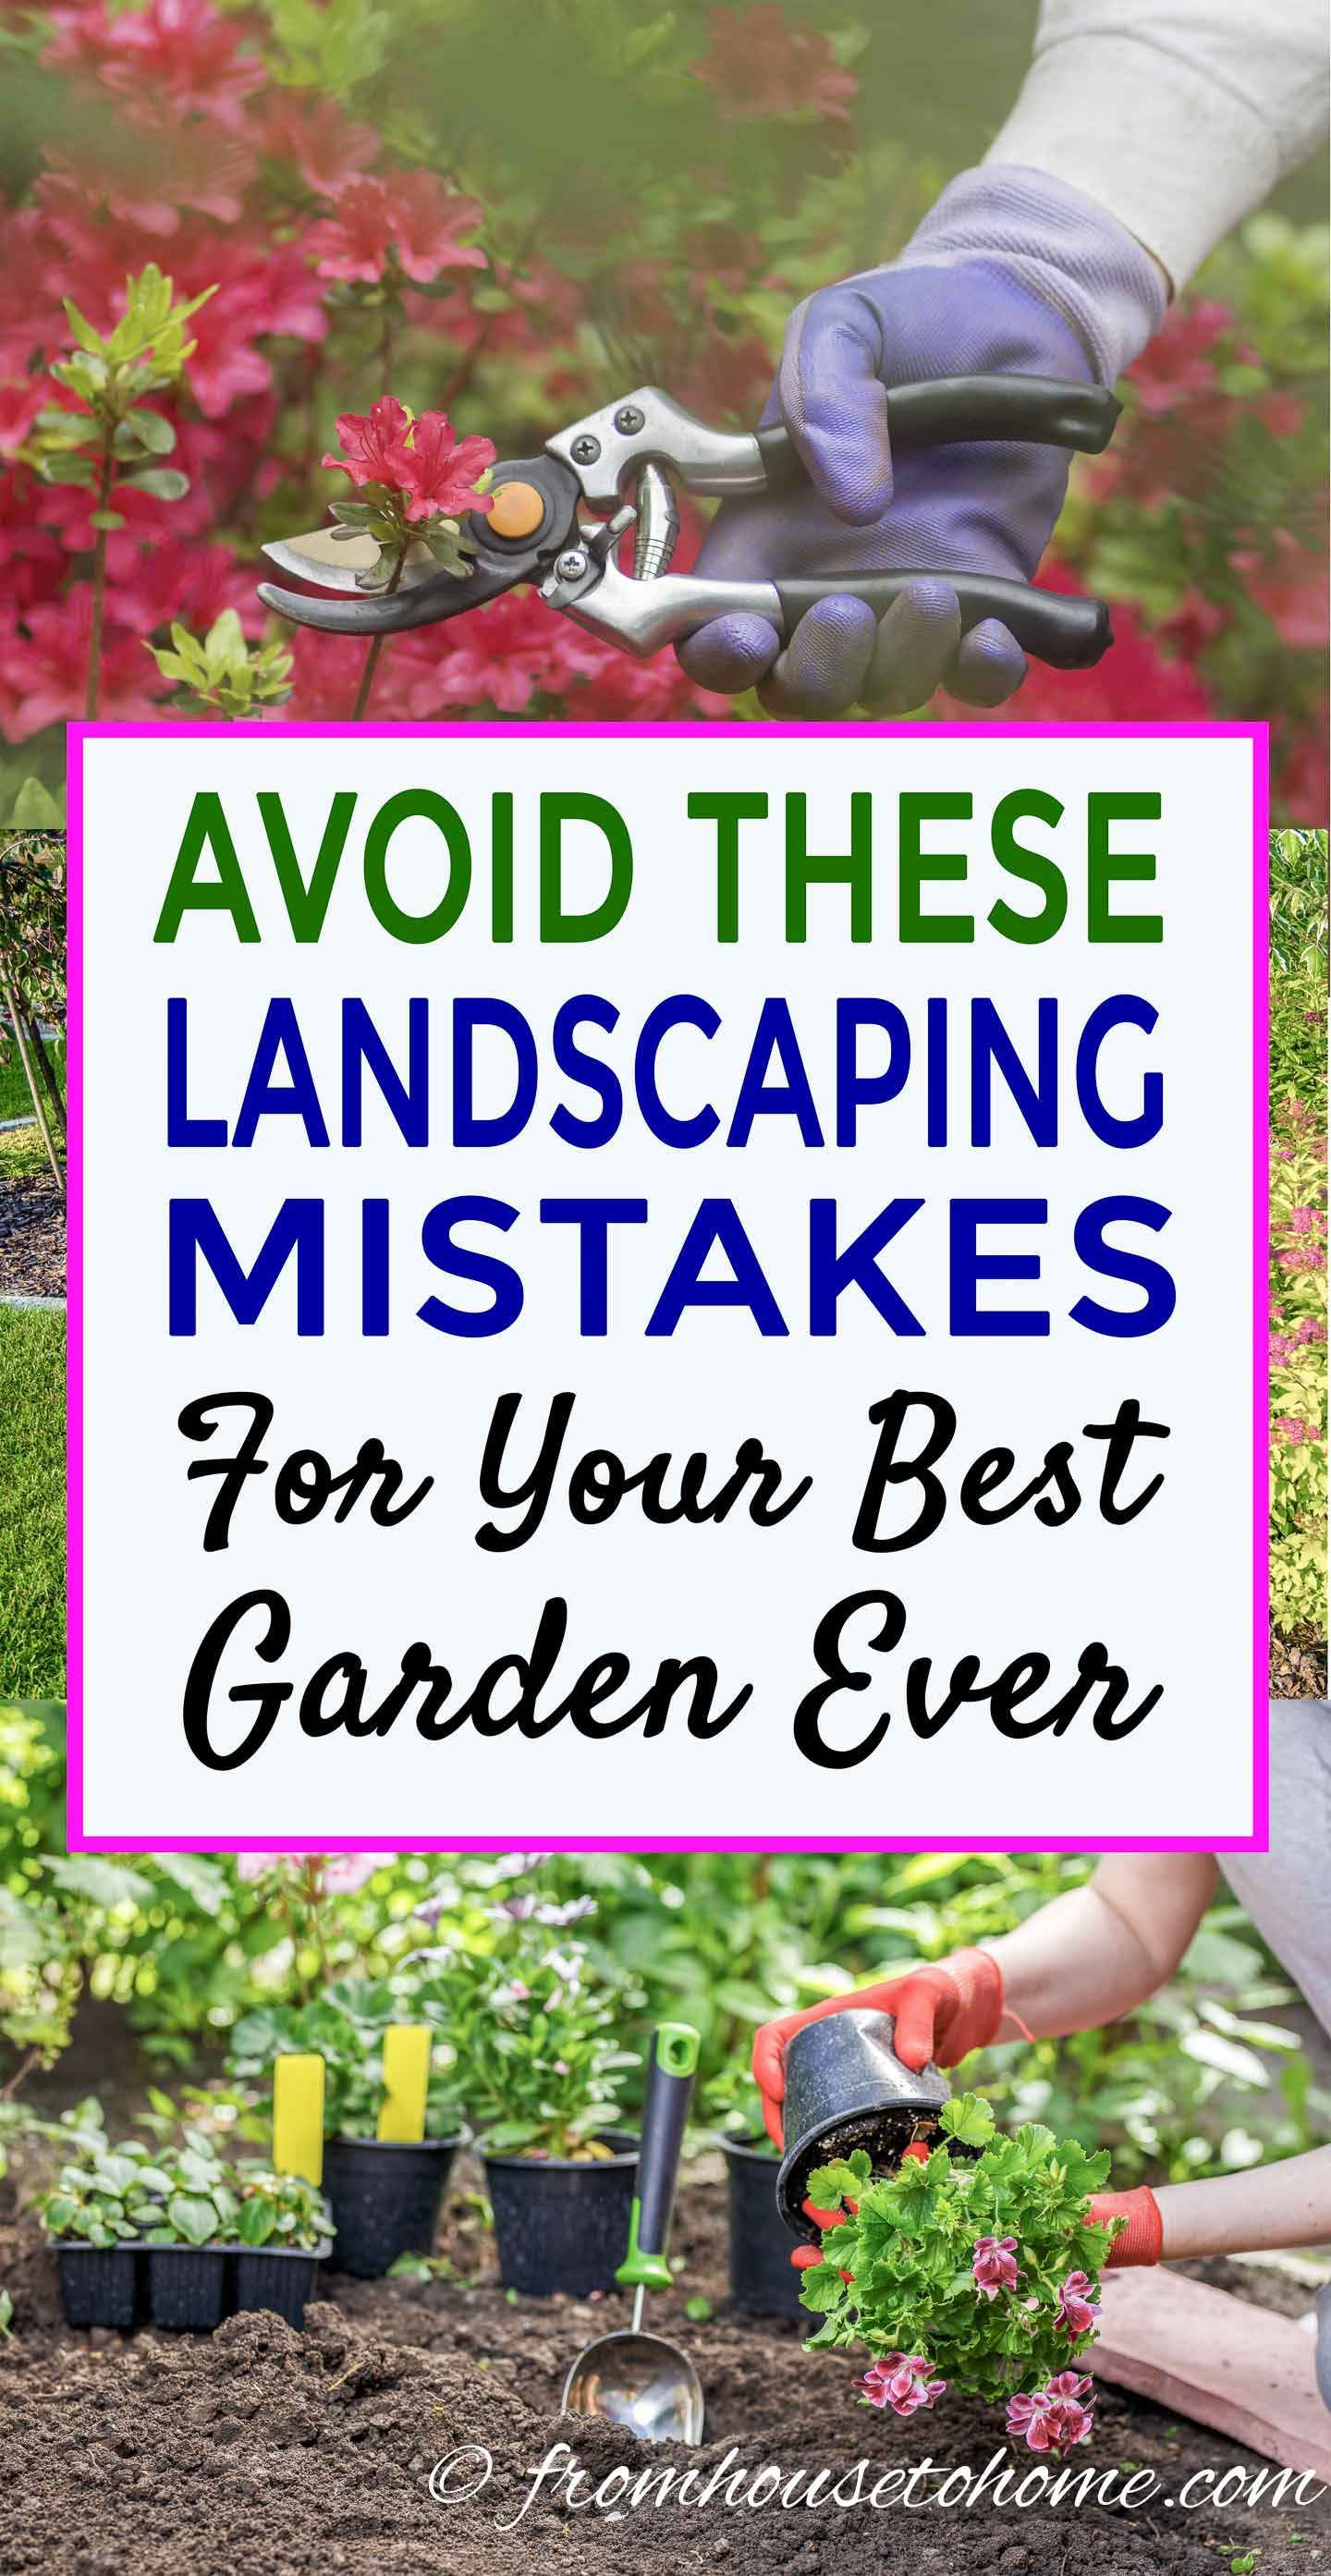 Avoid These 10 Landscaping Mistakes For Your Best Garden Ever - Gardening @ From House To Home